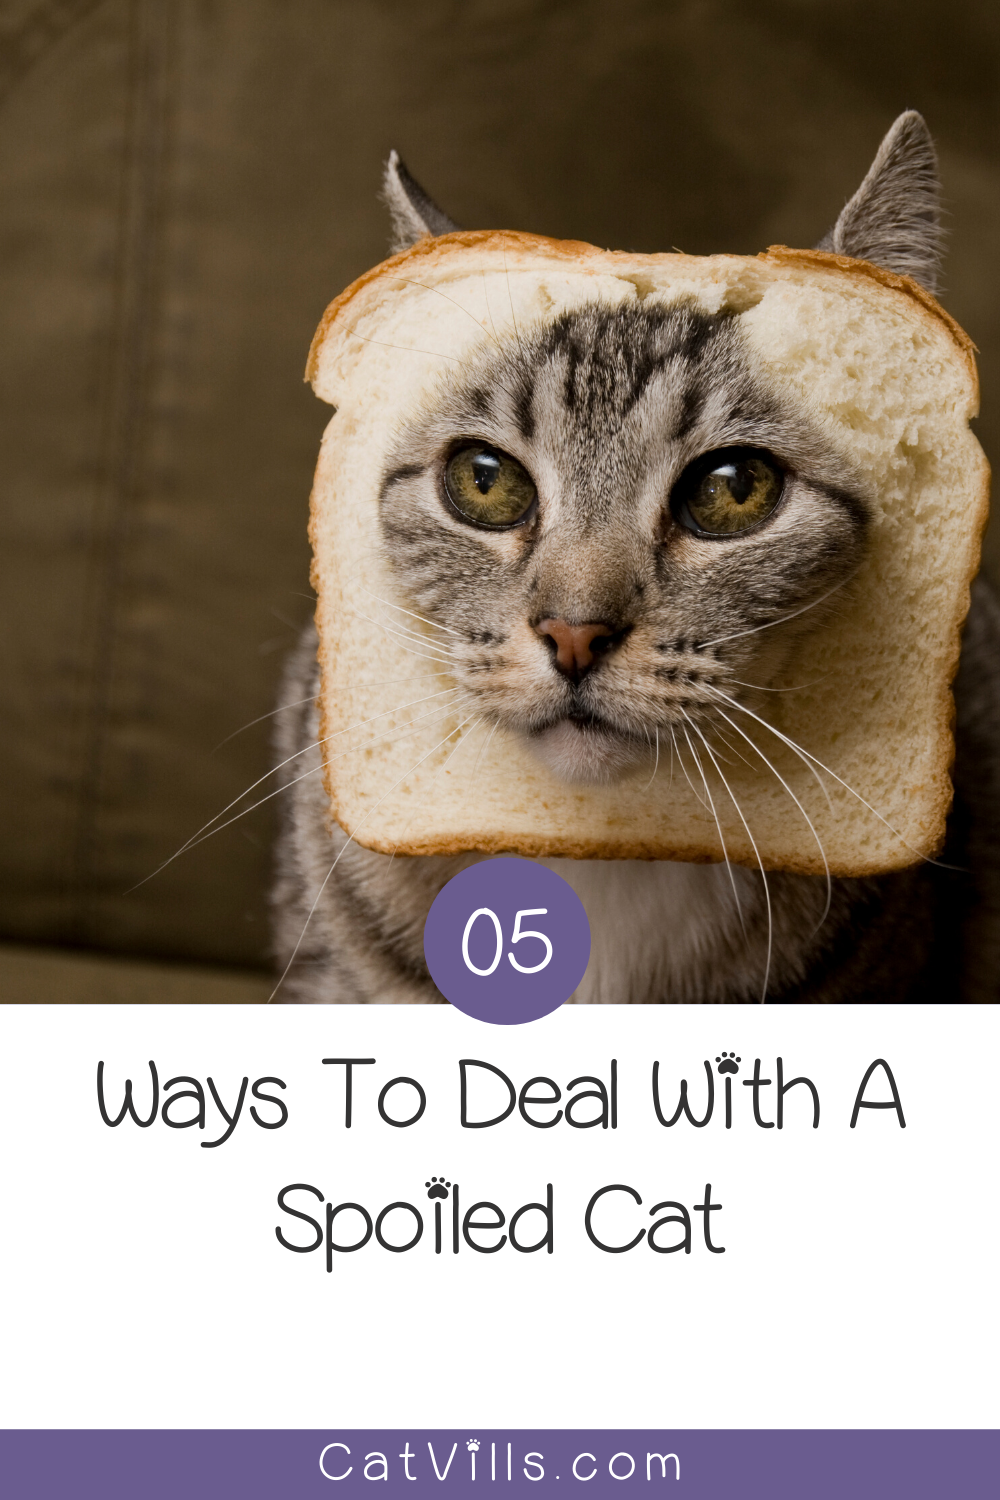 How Can I Deal with a Spoiled Cat? CatVills in 2020